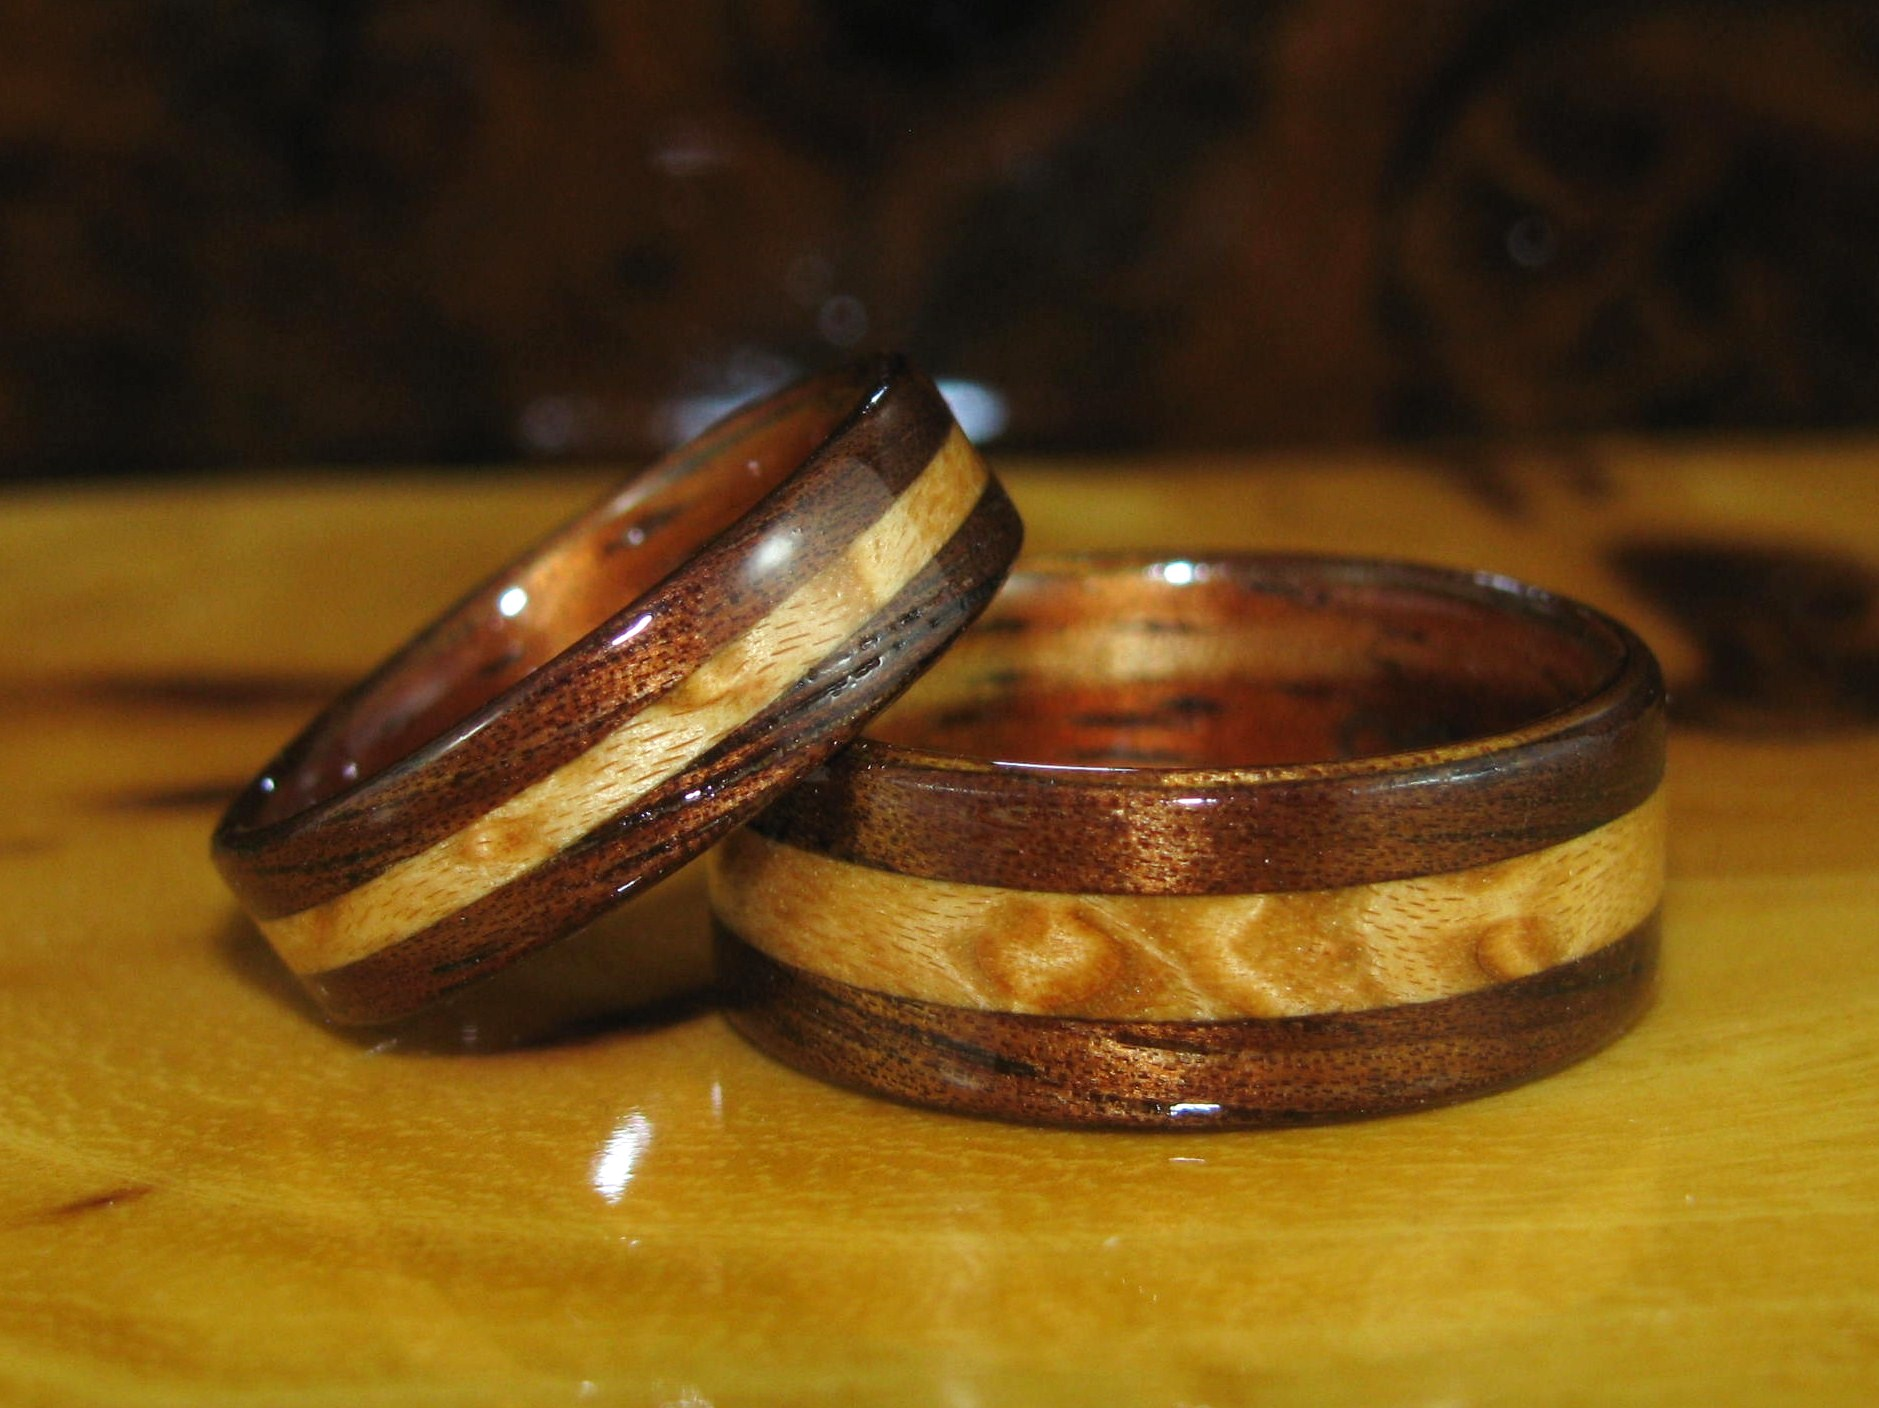 tungsten matching wedding band set matching bands his hers engagement ring set two tone bands flat shaped comfort fit 6mm 8mm 1 koa wedding bands Tungsten Matching Wedding Band Set Hawaiian Koa Wood Matching Bands His Hers